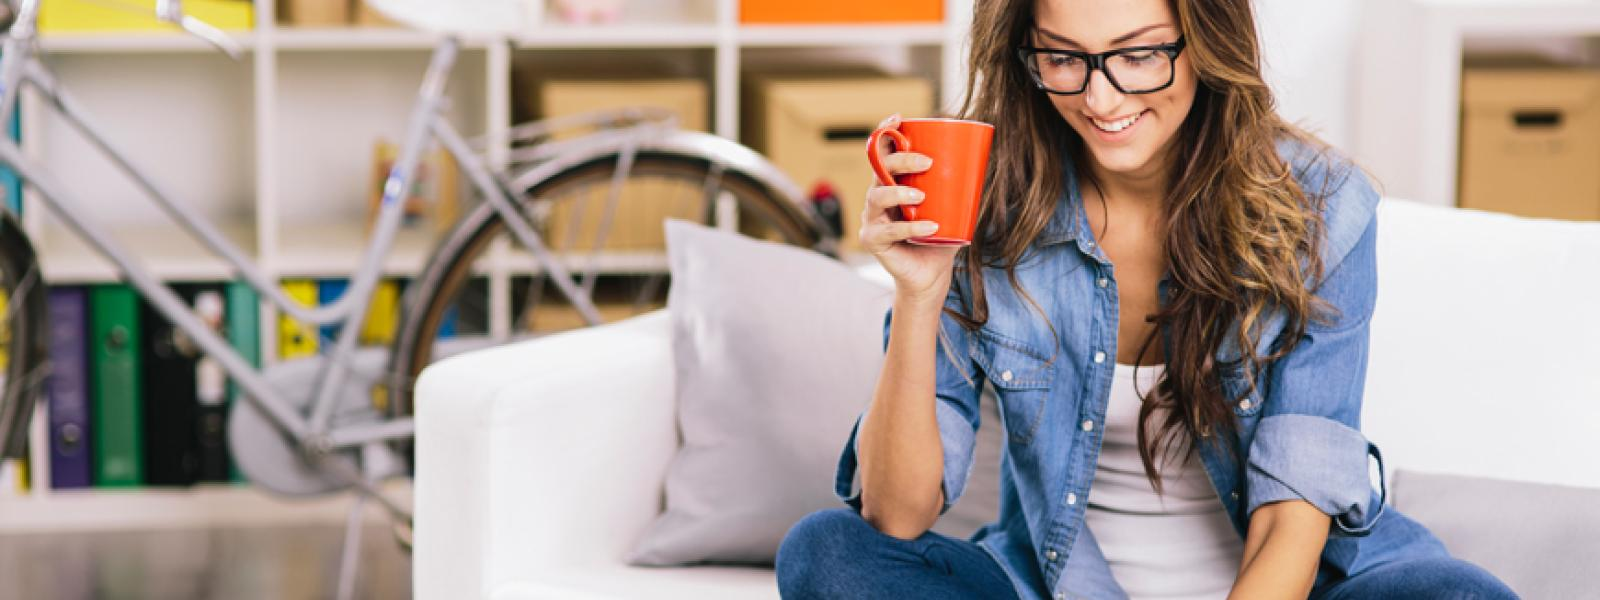 A photo of an online student wearing a denim shirt and holding an orange coffee cup.